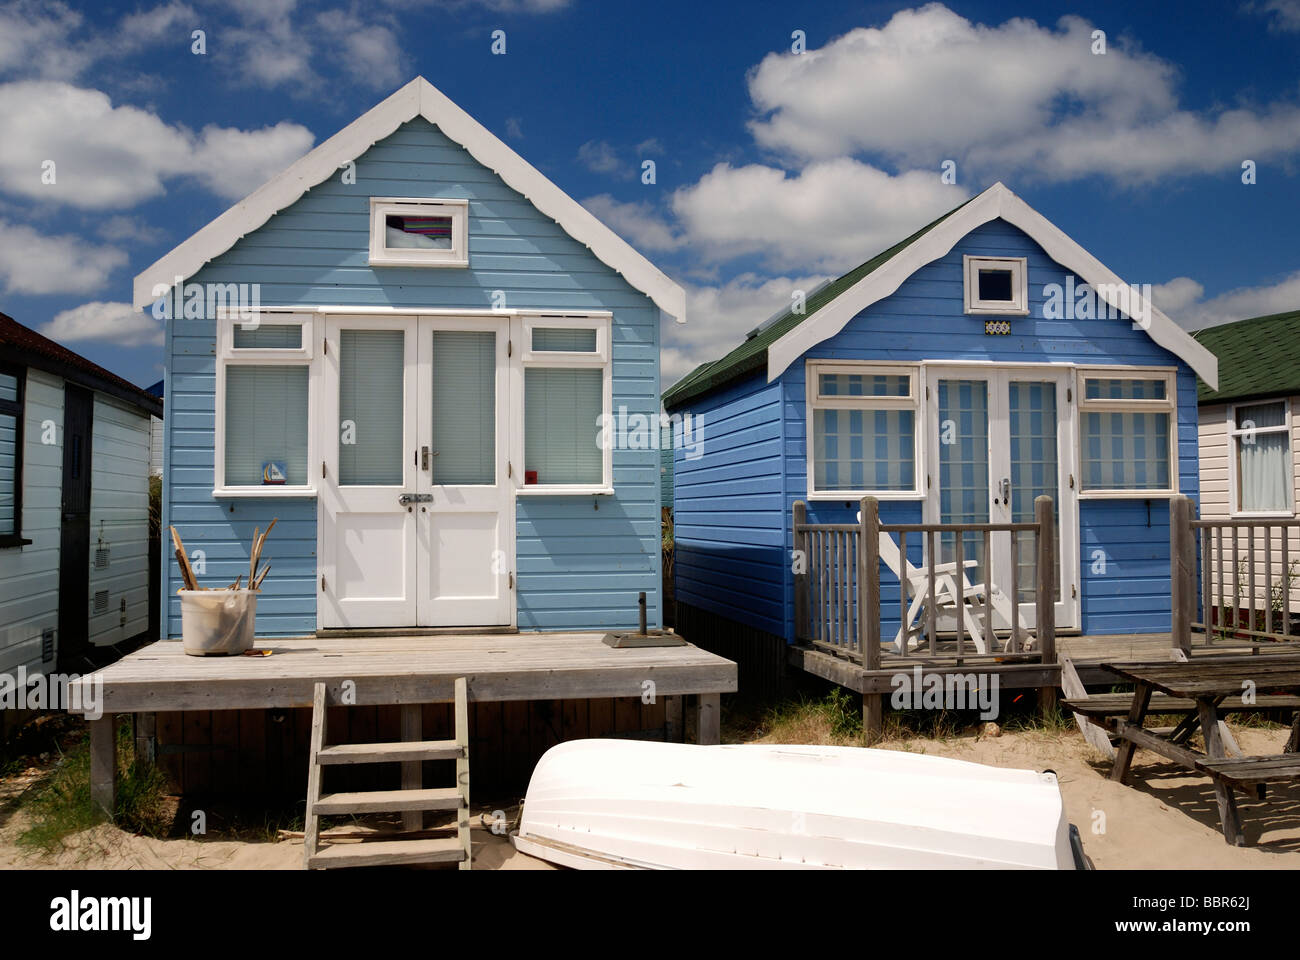 Two large deluxe beach huts - Stock Image